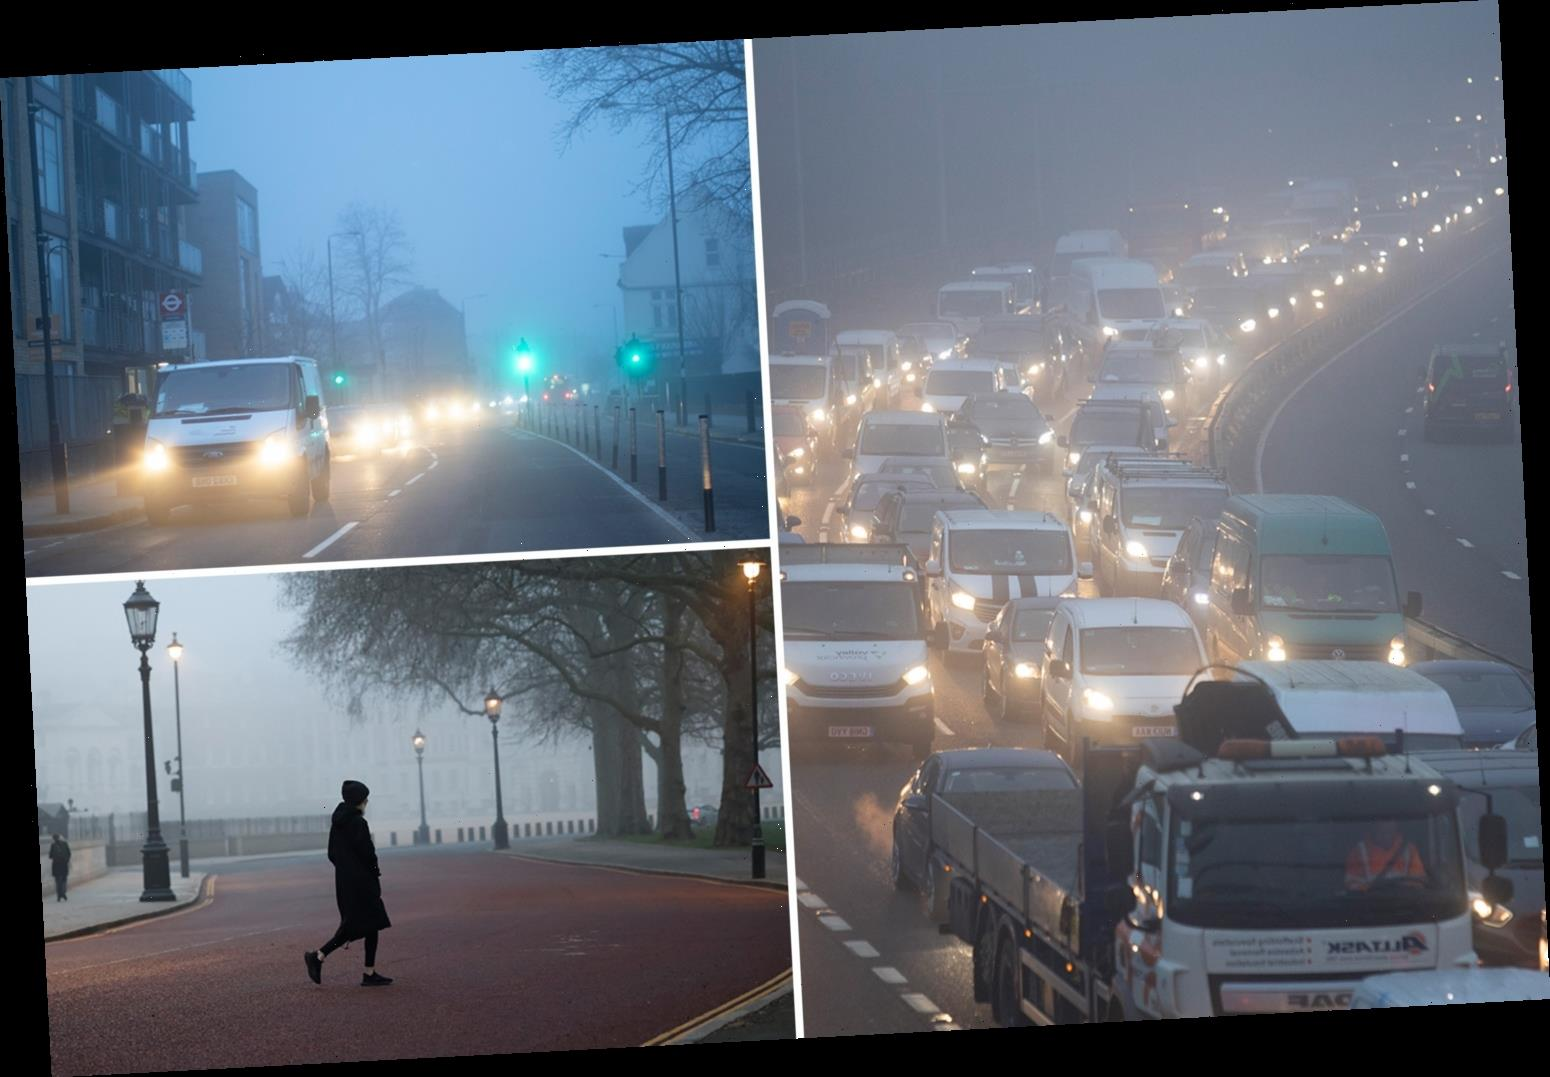 'Severe' fog risks traffic delays and flight cancellations in London and South East as Met Office issues weather warning